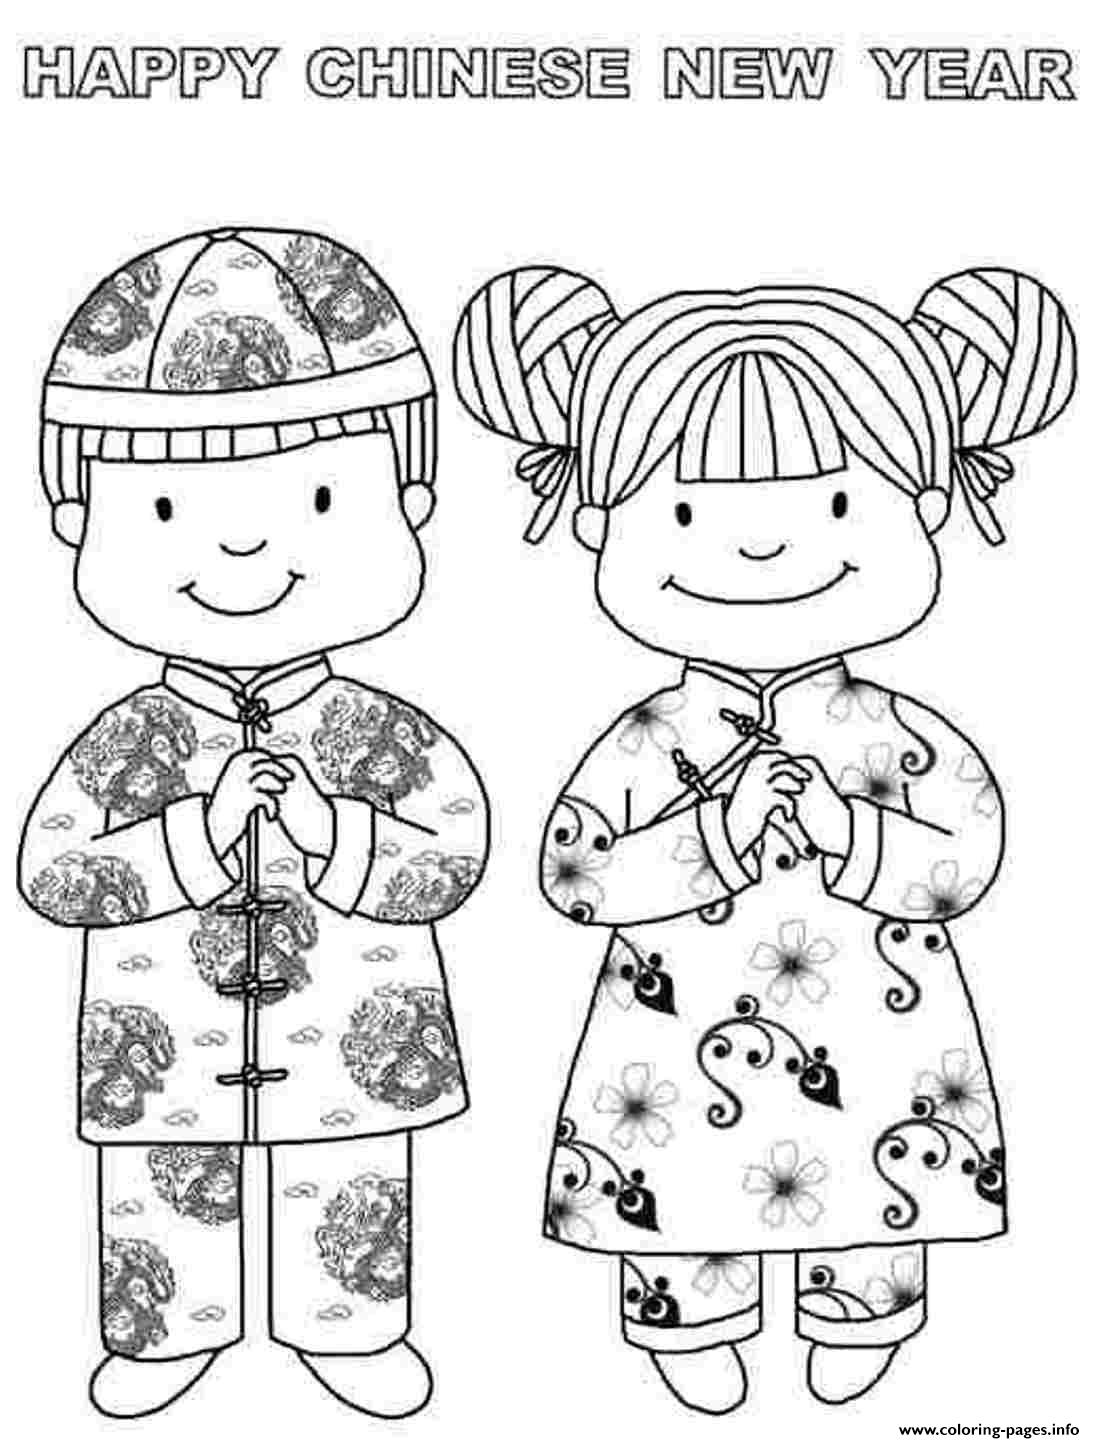 Chinese New Year S Printable80bb Coloring Pages Printable